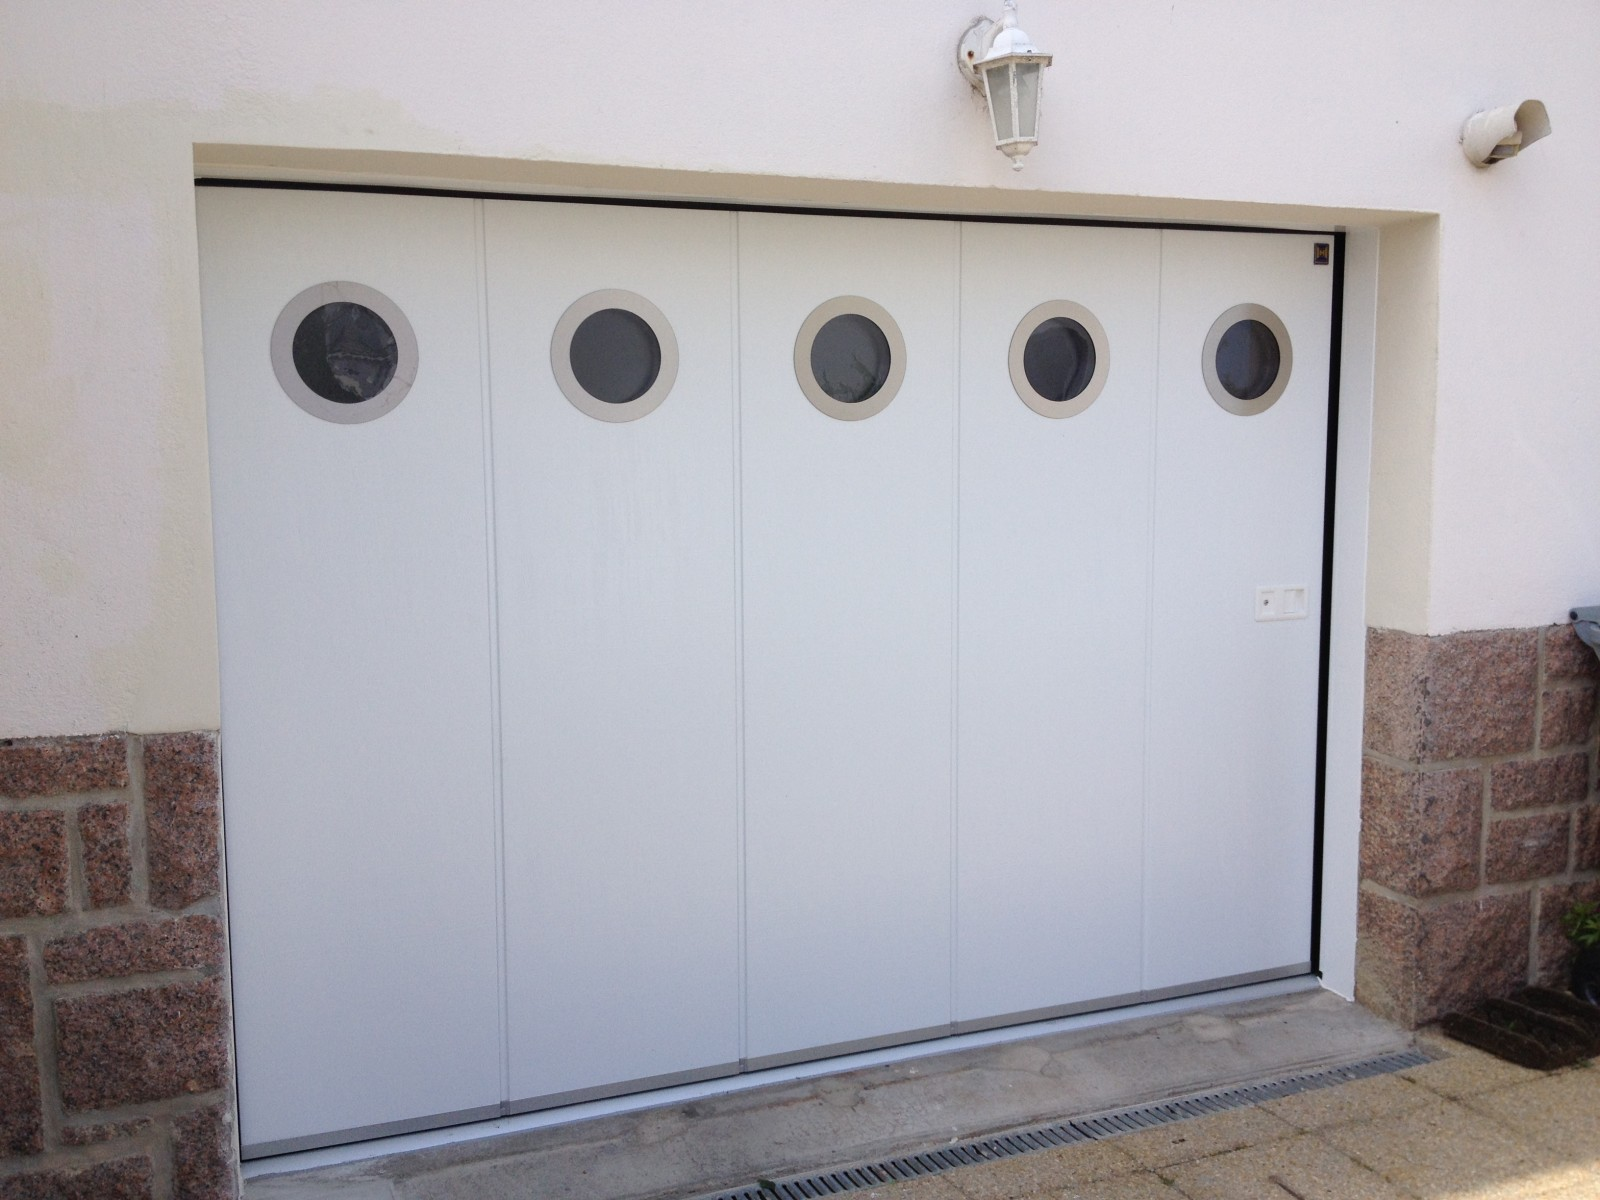 Porte garage coulissante the best home design - Porte de garage electrique coulissante ...